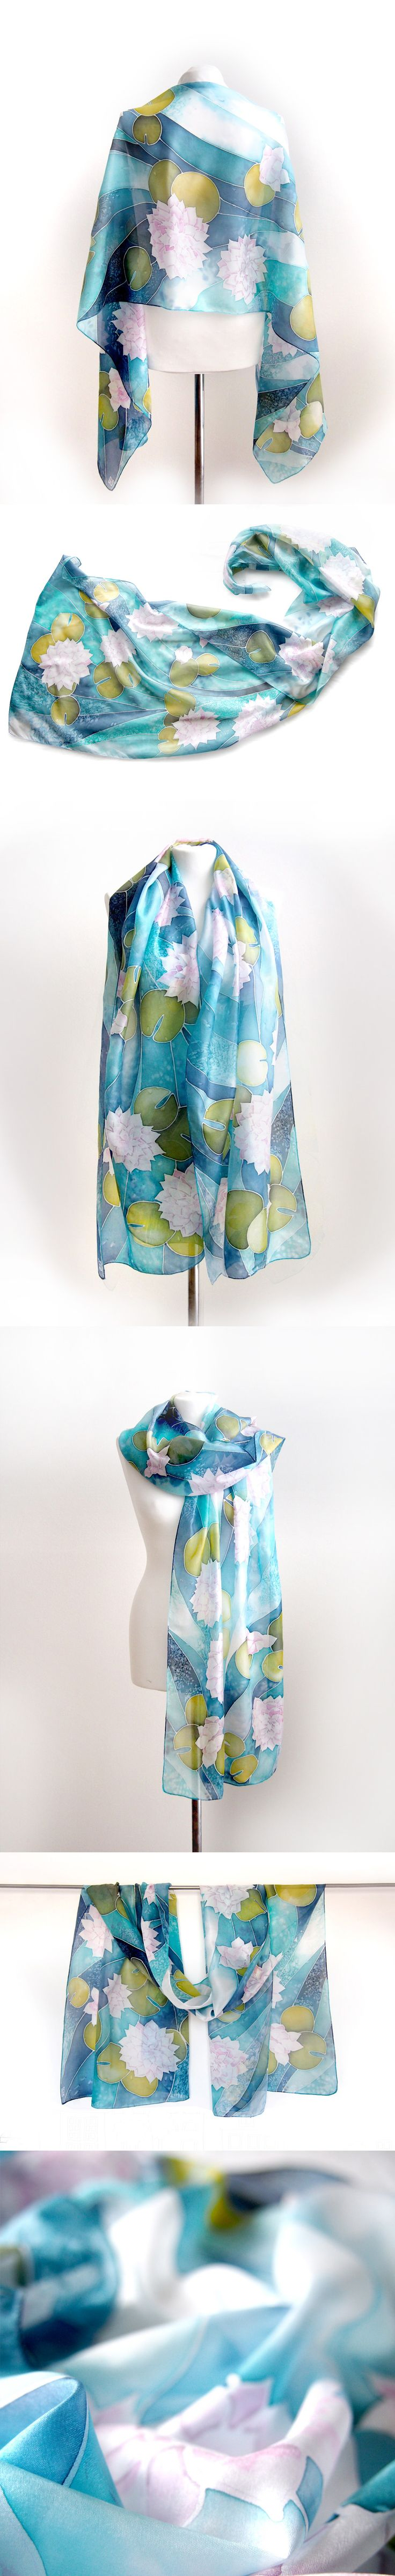 #hand #painted #silk #scarf by #malinowska #minkulul with #teal #blue and #bright #pink #flowers